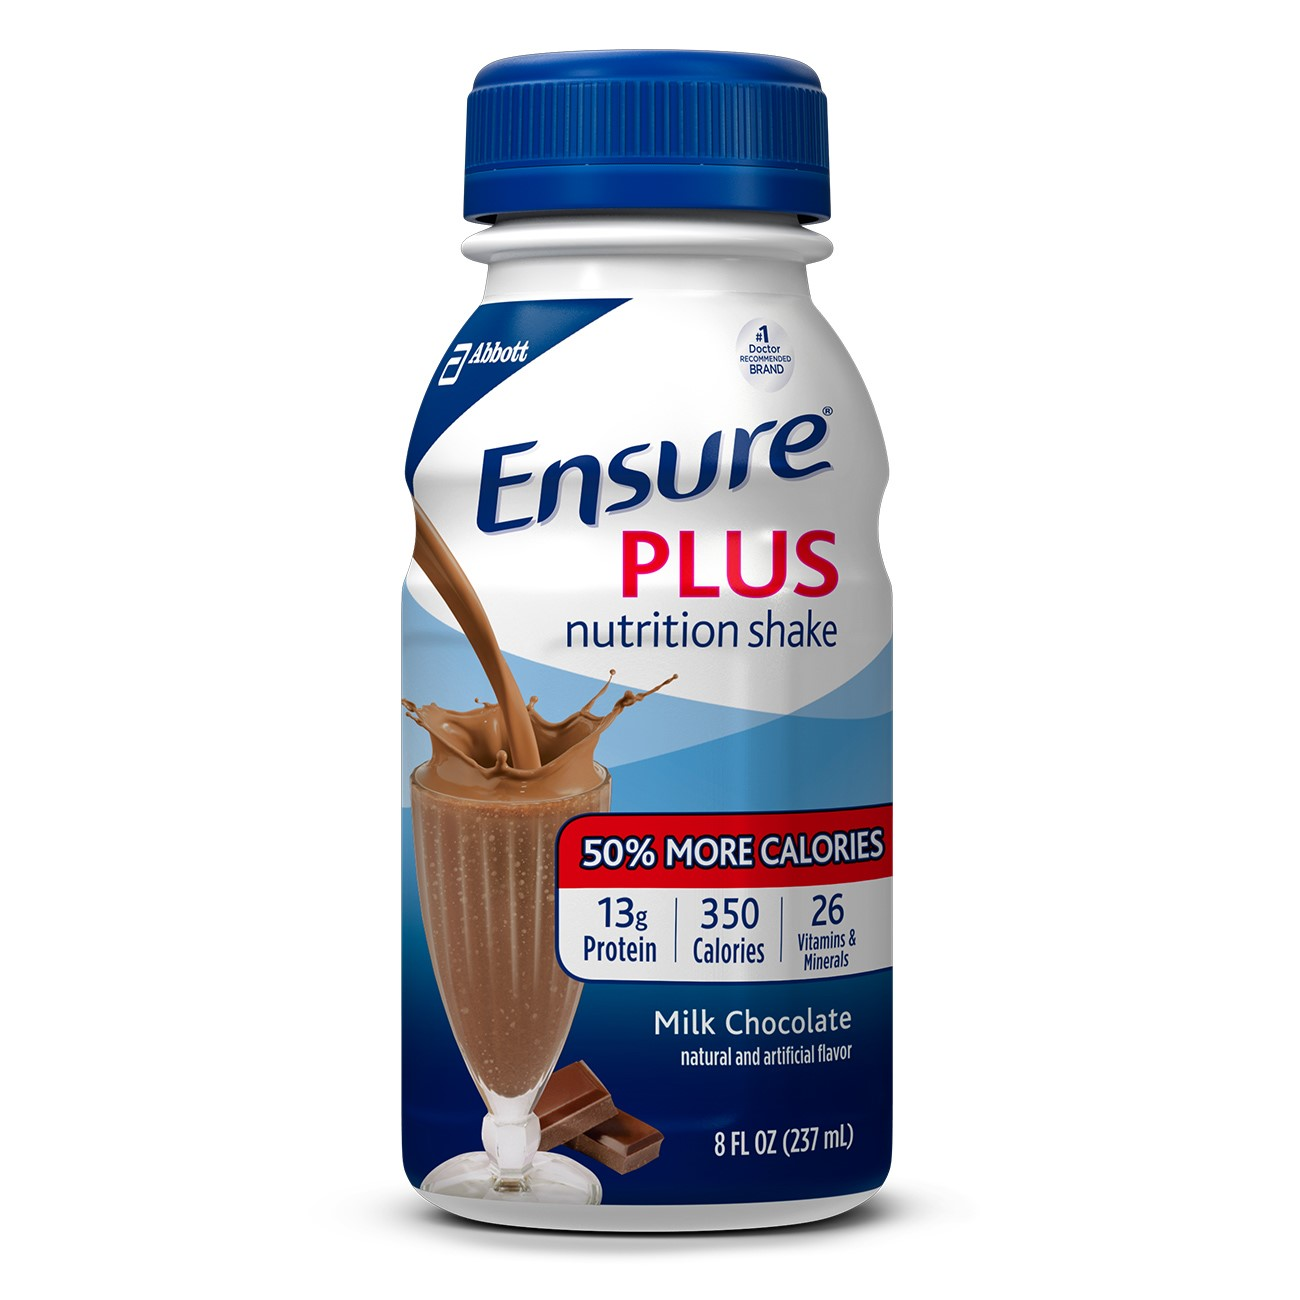 Ensure Plus Nutrition Shake Milk Chocolate with 13 grams of protein, Meal Replacement Shakes, 8 Fl oz Bottles, 16 Ct